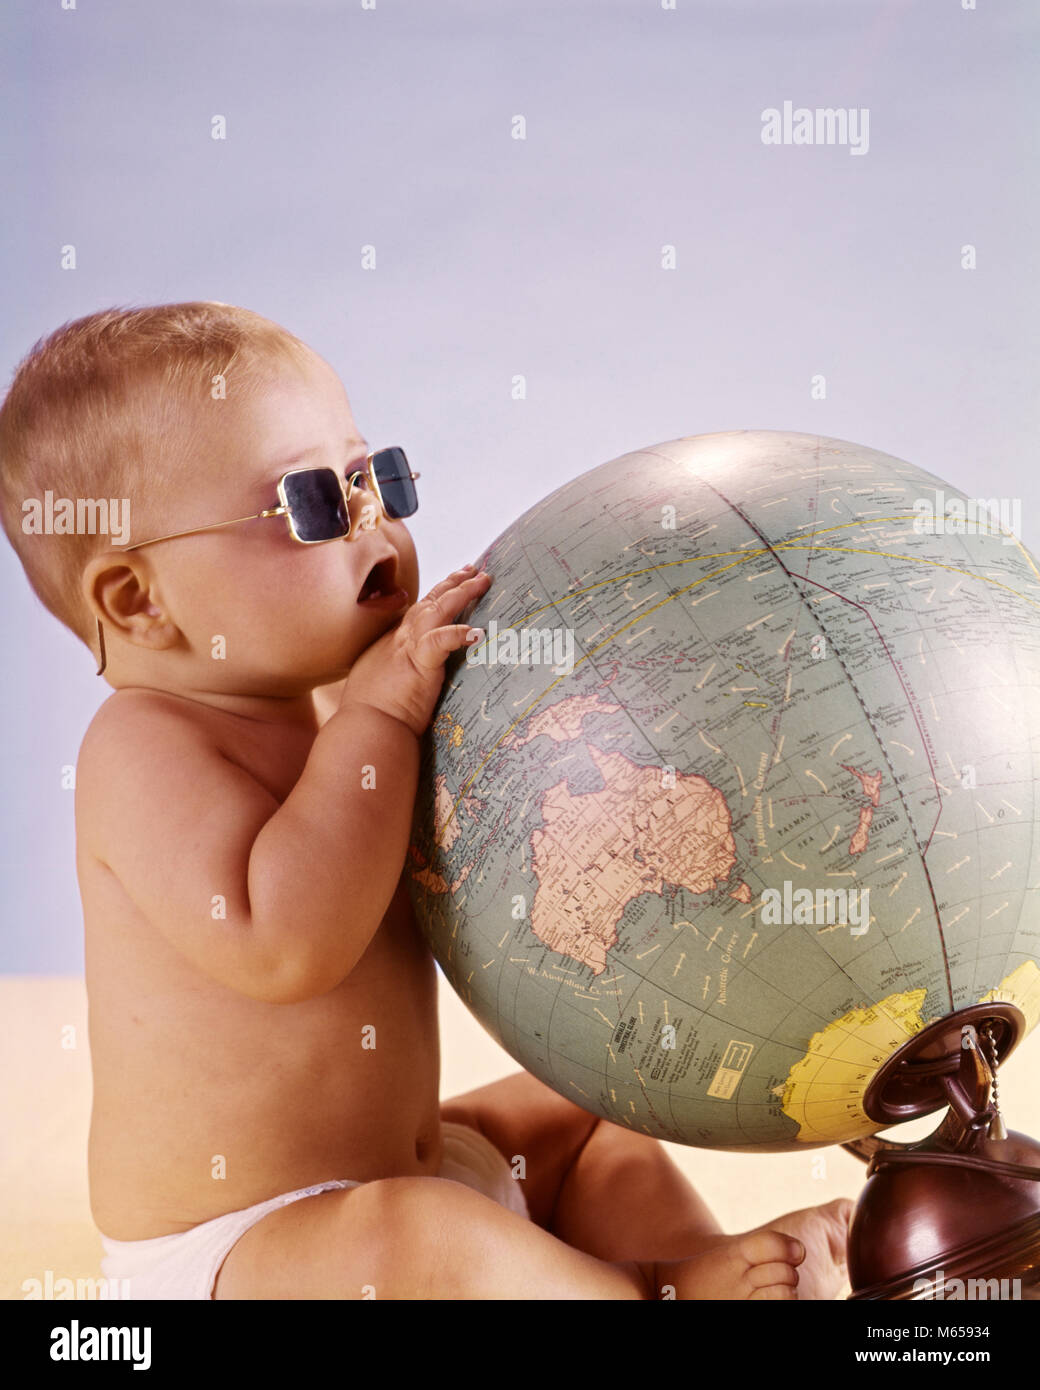 1960s BABY WEARING SUNGLASSES LOOKING LOOKING AT WORLD GLOBE MAP - kb6043 HAR001 HARS DIRECTION GROWTH CONNECTION - Stock Image